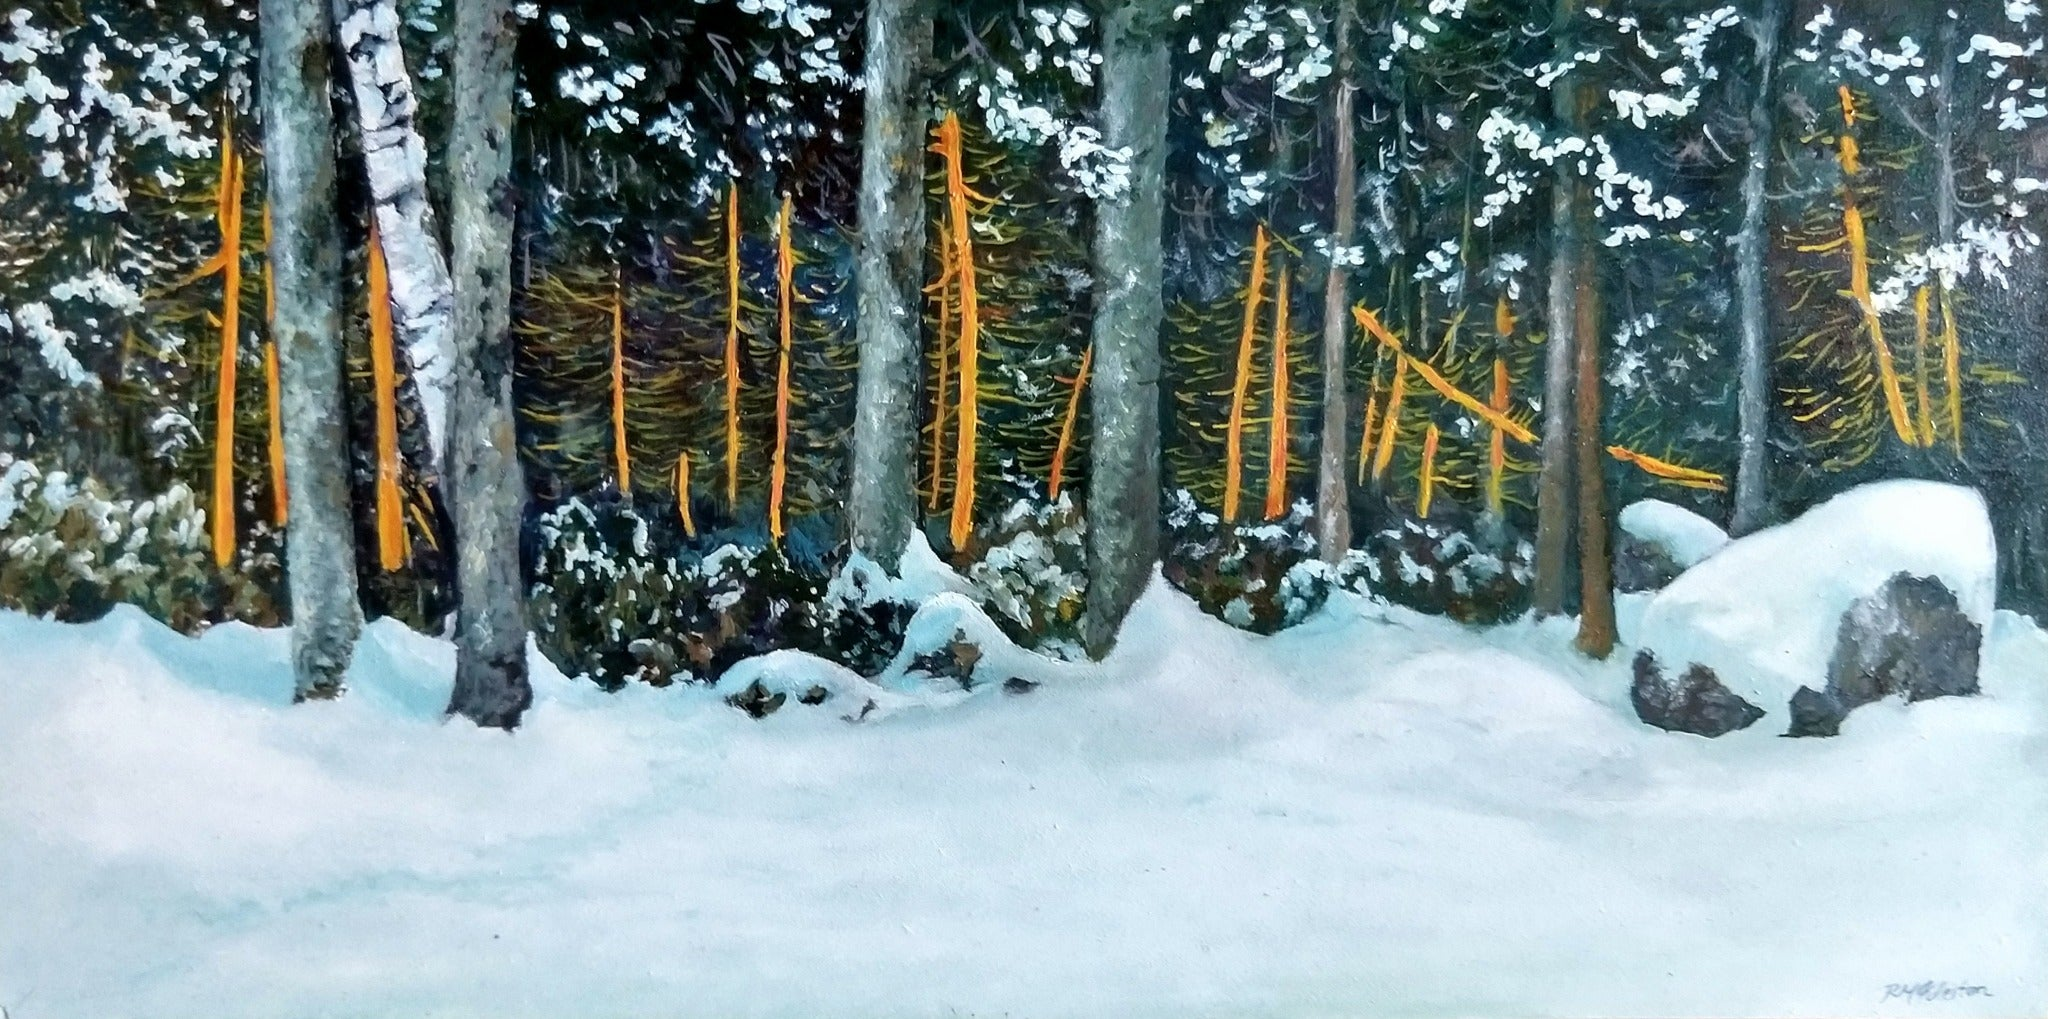 """Lights in the Trees,"" original 11.75 x 23.5 inch oil on panel landscape painting"